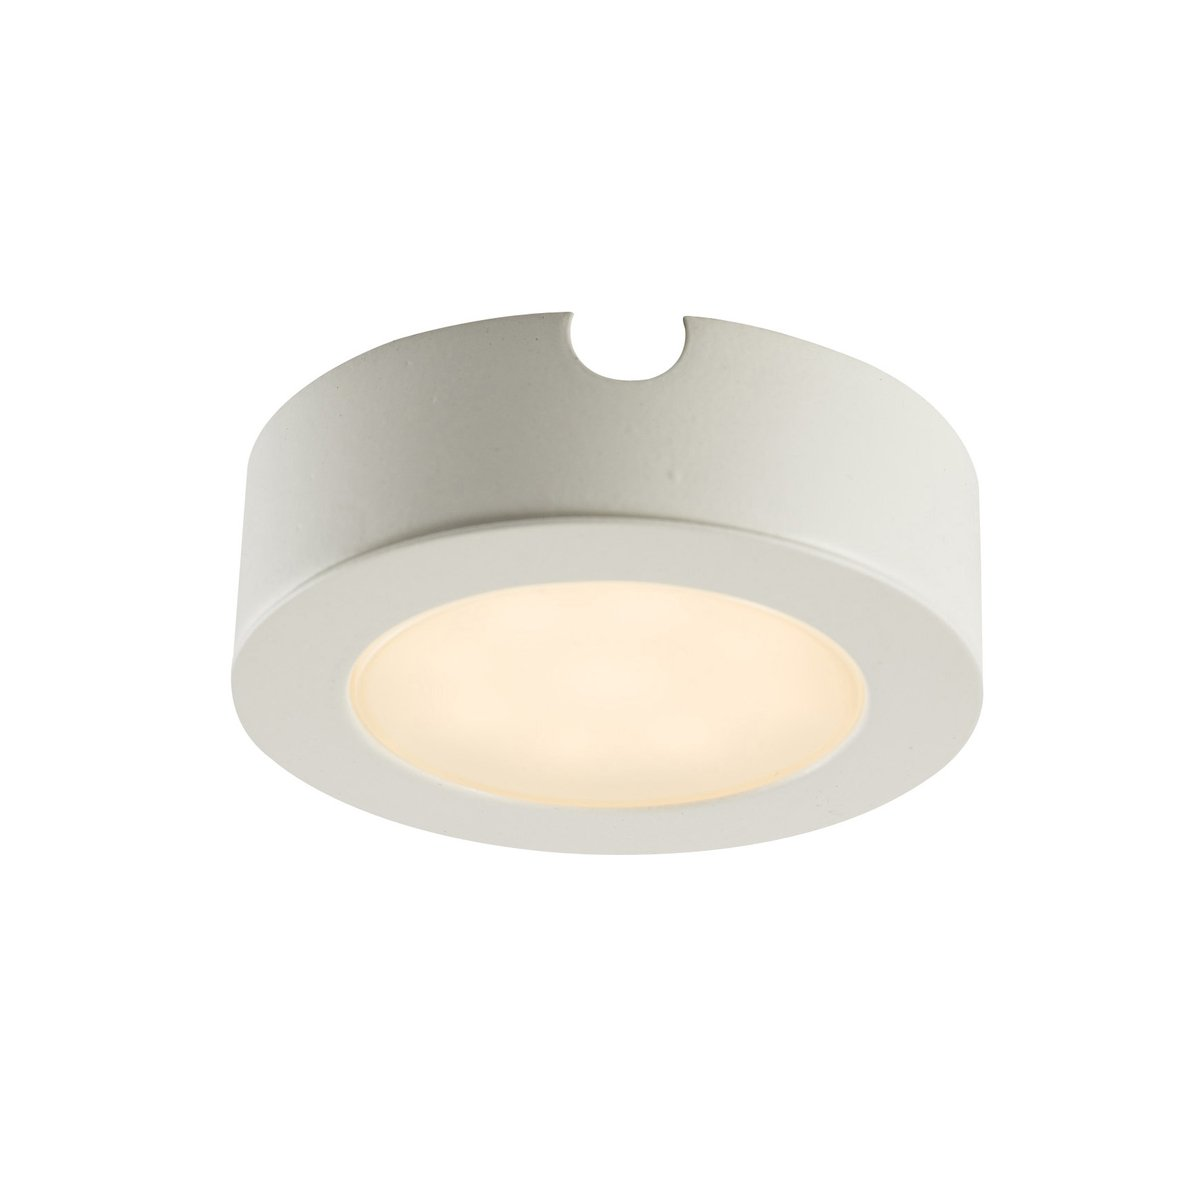 Additional Head - Round Design LED Kitchen/Under Cabinet Light in a Satin Nickel Finish [3000K Warm White] [Energy Class A++] National Lighting